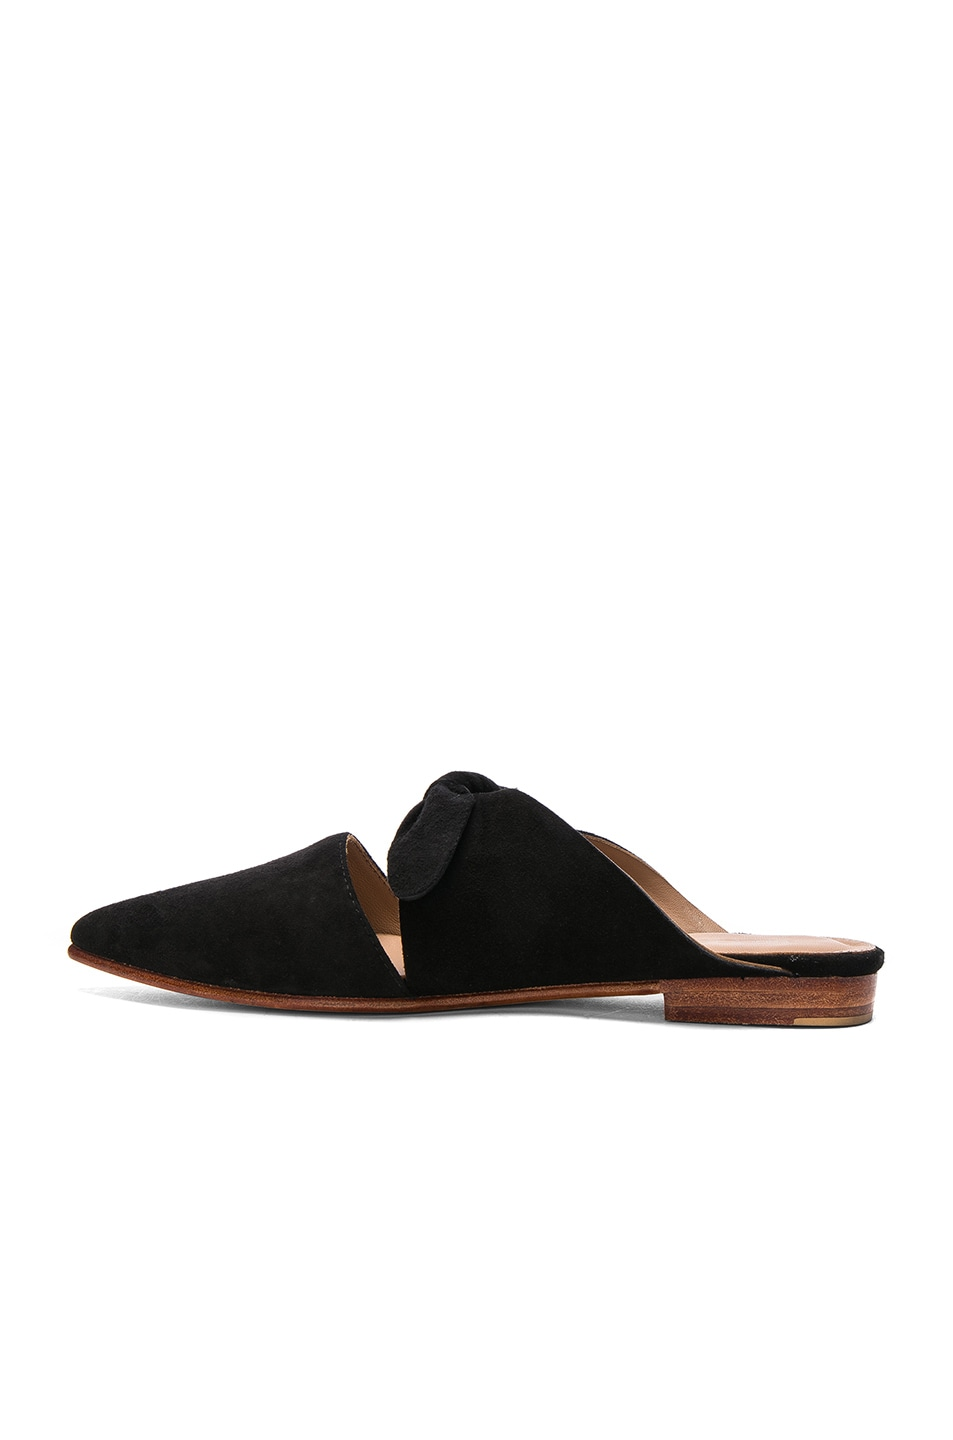 Image 5 of Ulla Johnson Suede Lilo Babouche Mules in Noir